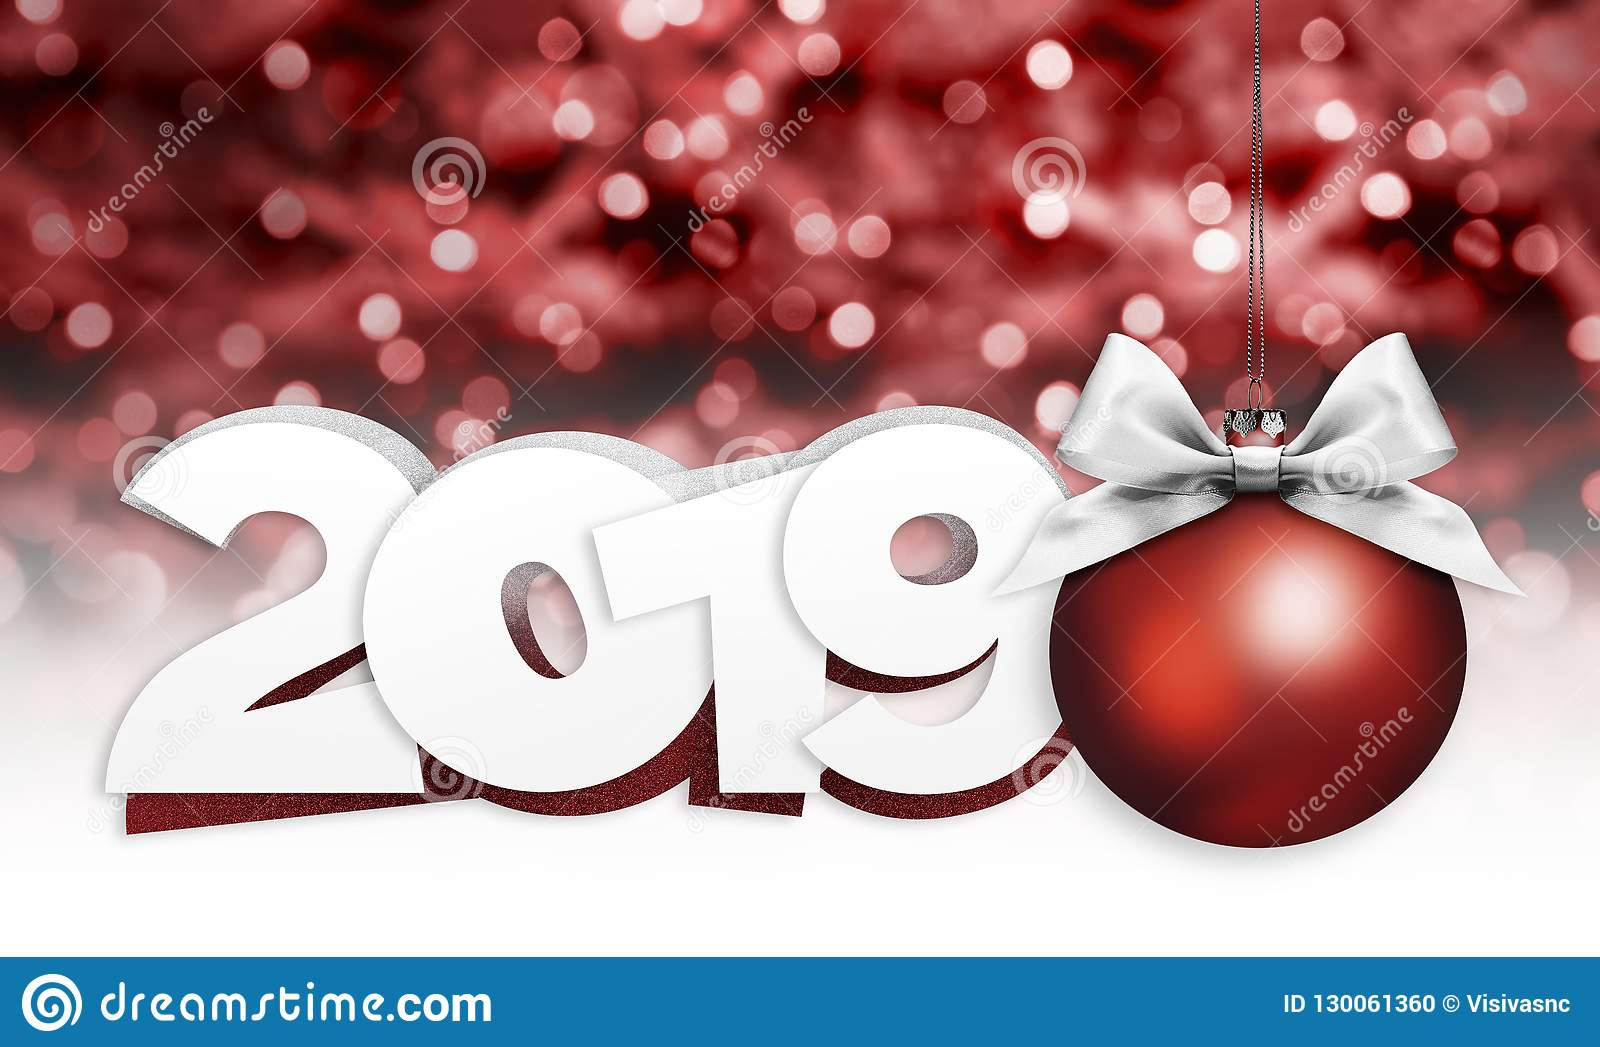 Christmas Graphics 2019.Happy New Year Card With Christmas Red Ball And 2019 Text